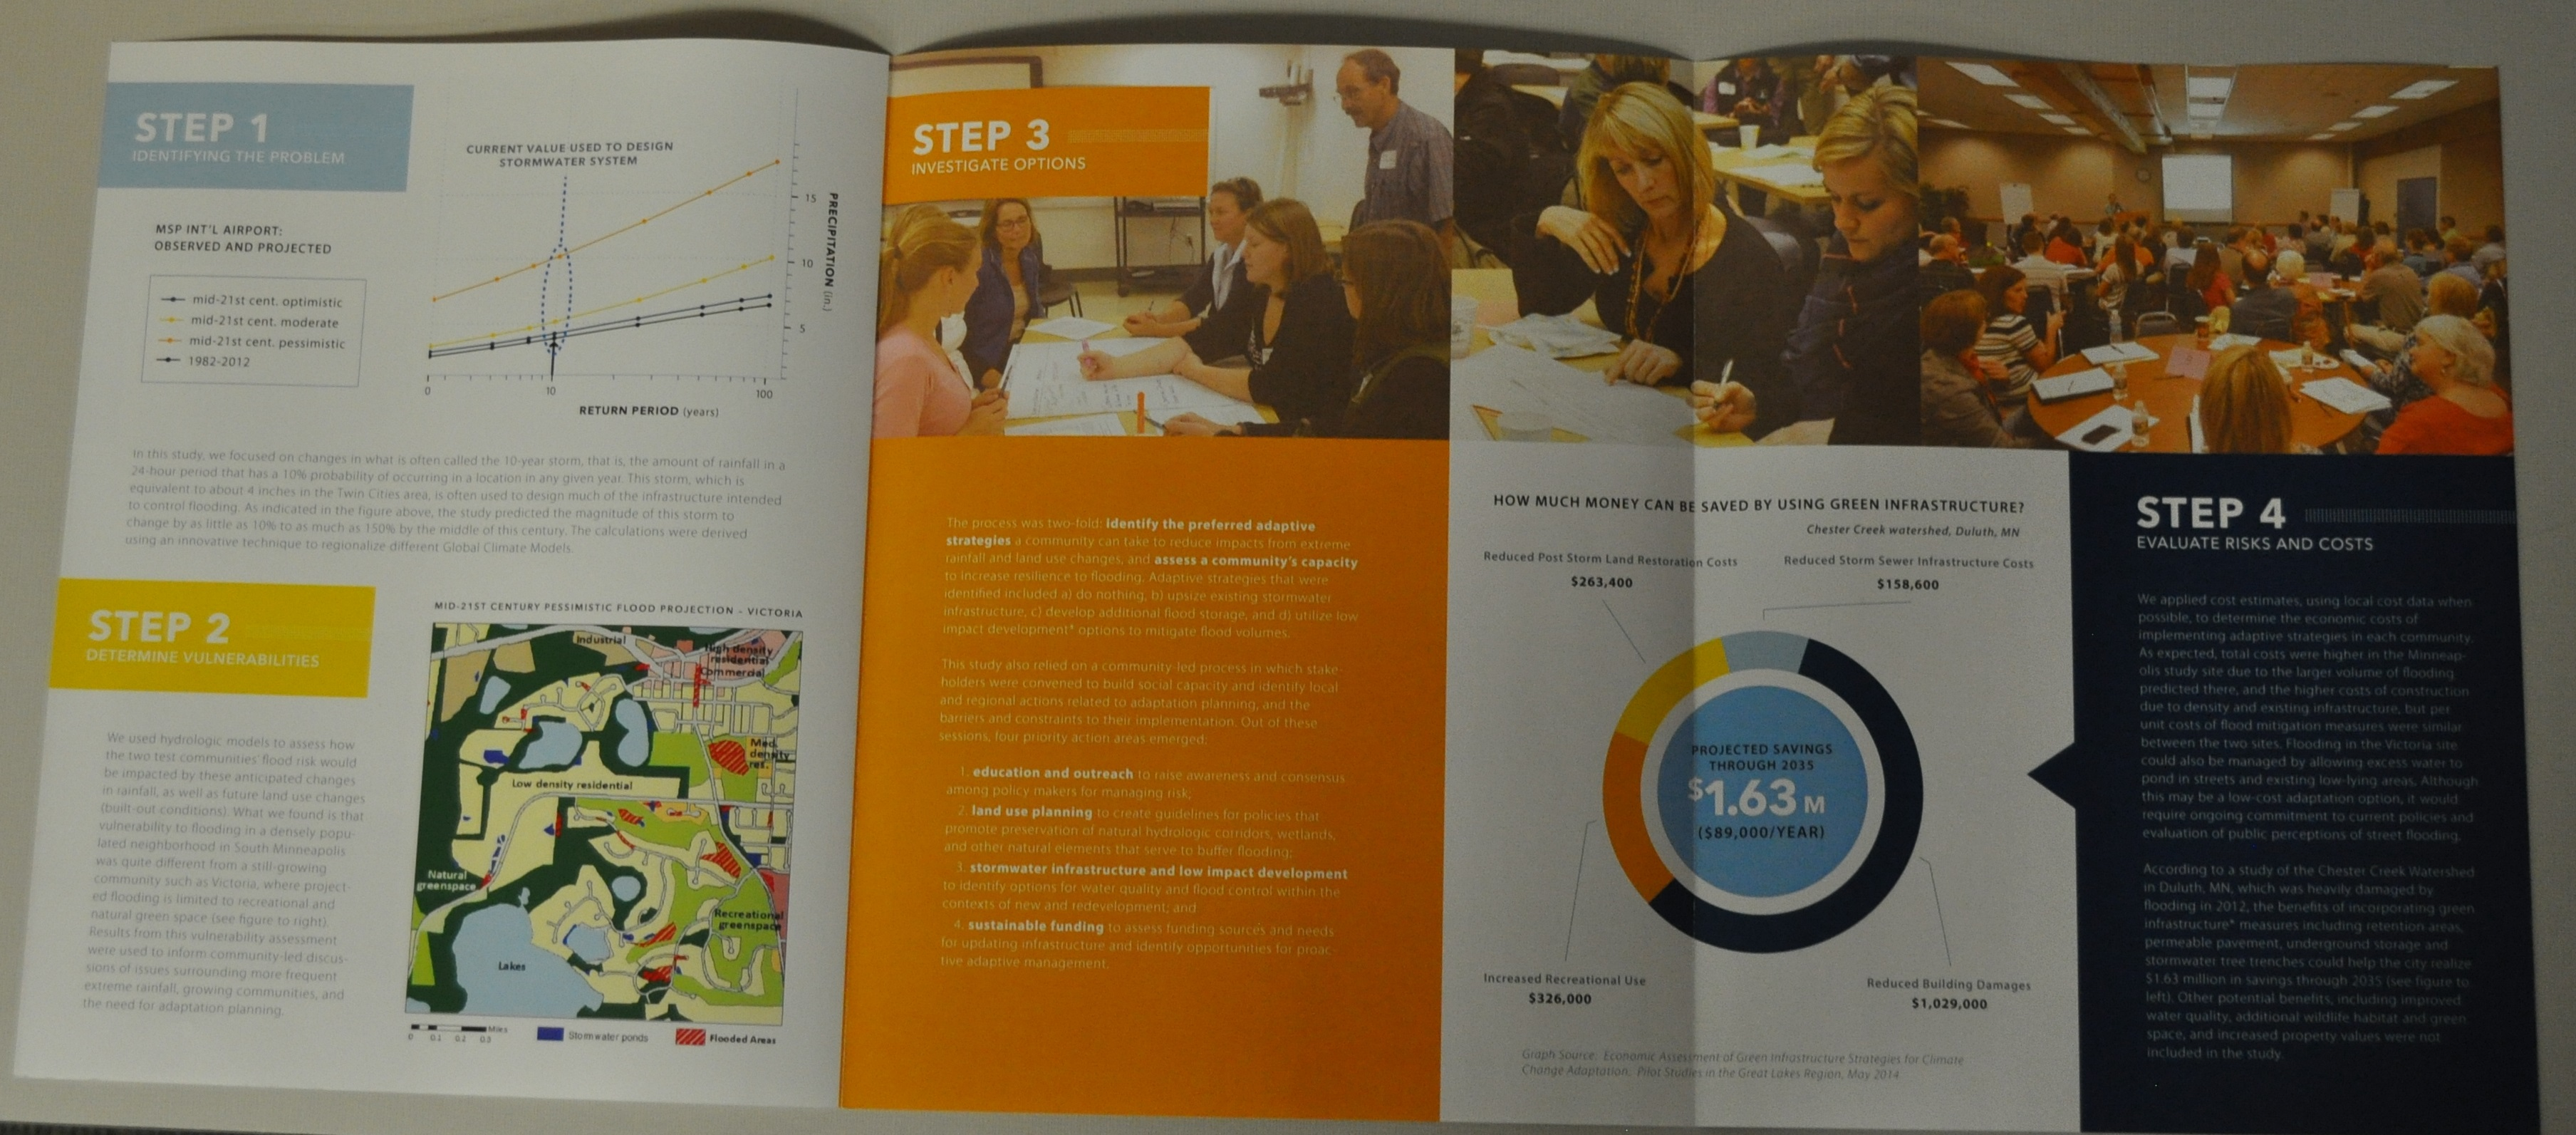 community adaption planning booklet inside